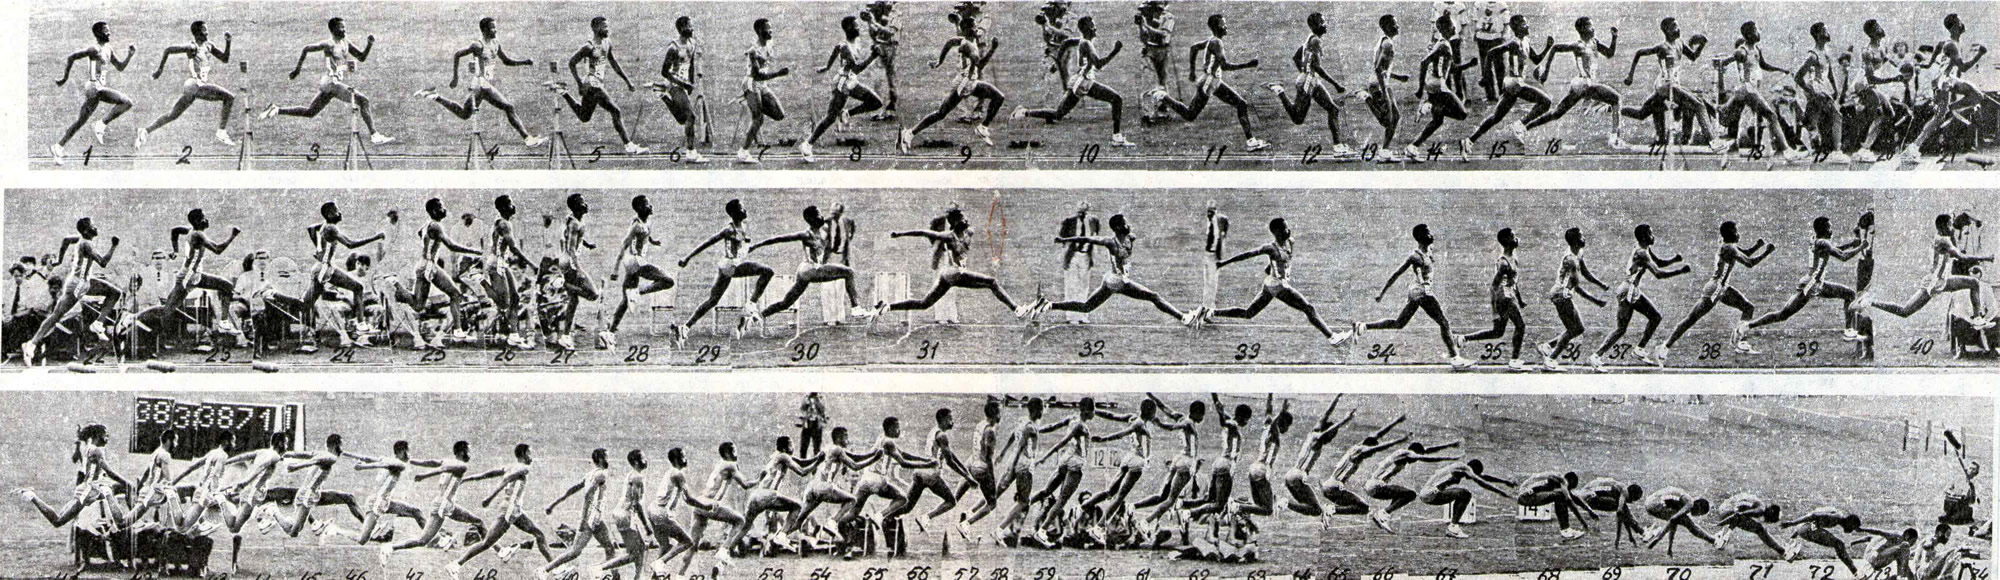 biomechanics of long jump essay The biomechanics of long jump biomechanics is the study of the body as a machine this study analyses the internal and external forces which act on the body and the movements that these forces produce.